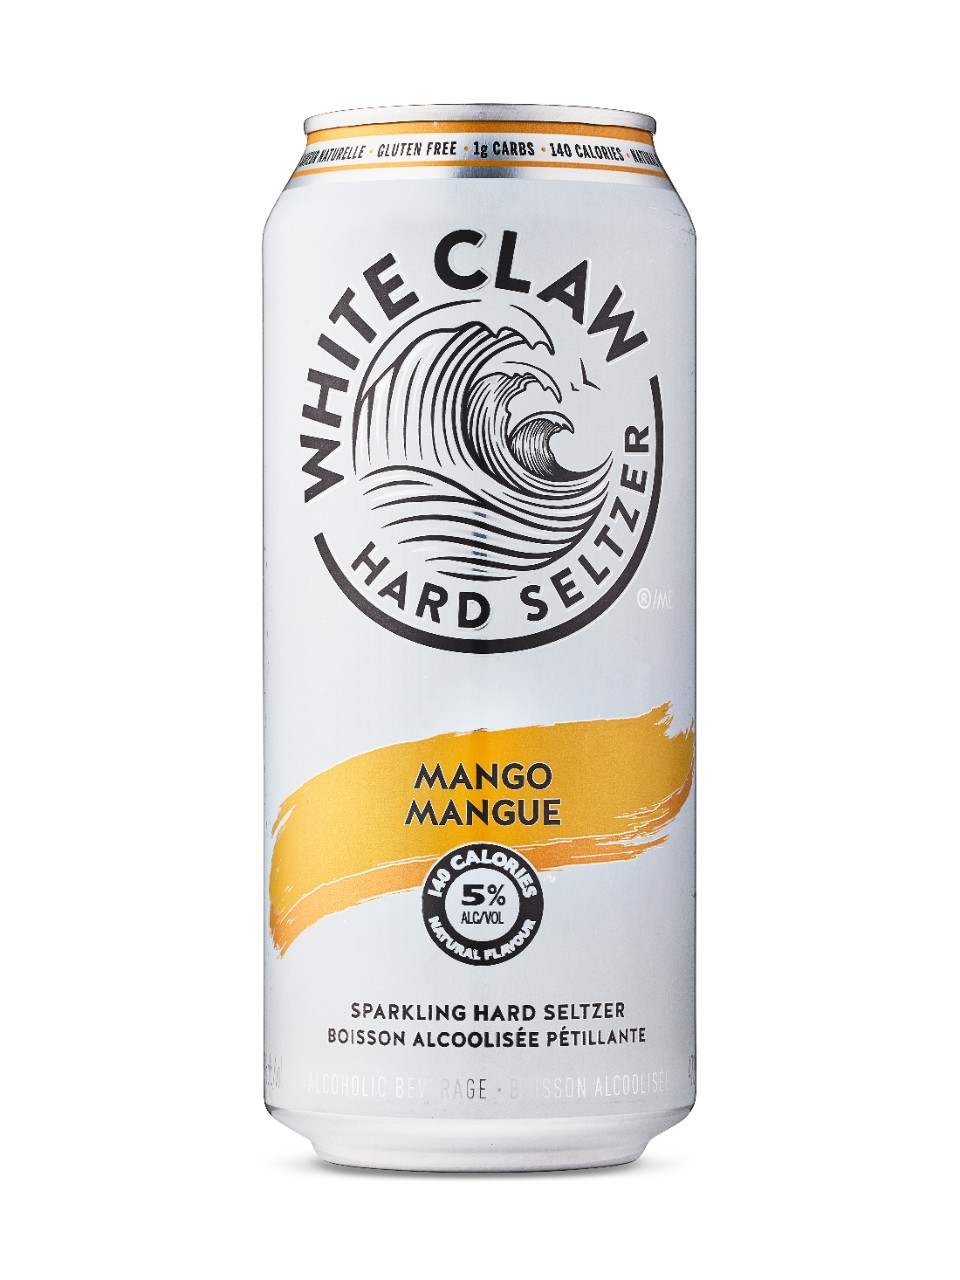 how much alcohol percentage is in white claw